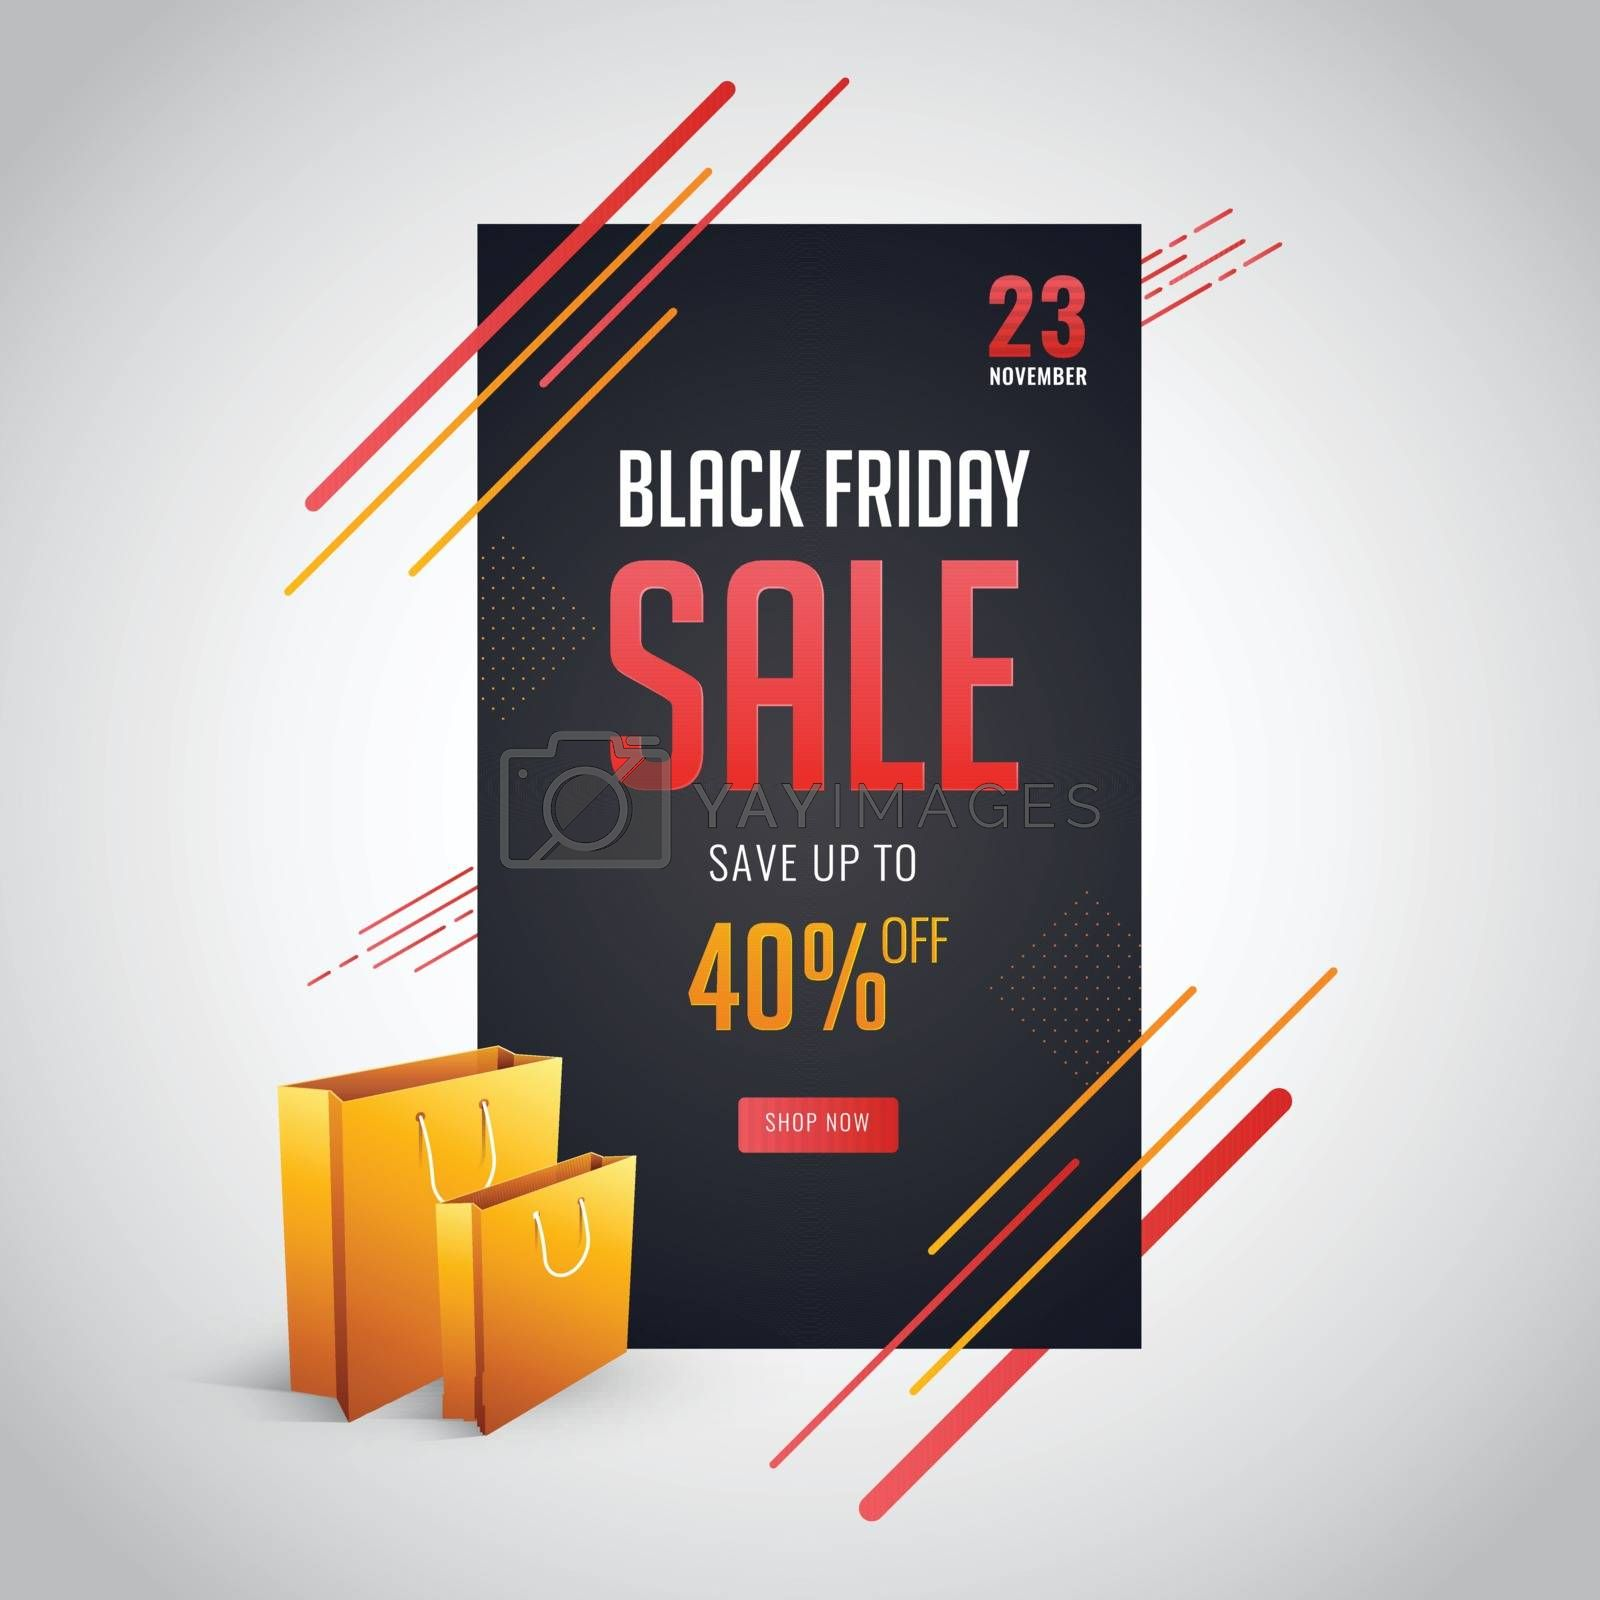 Black Friday Sale template design with save upto 40% Off.